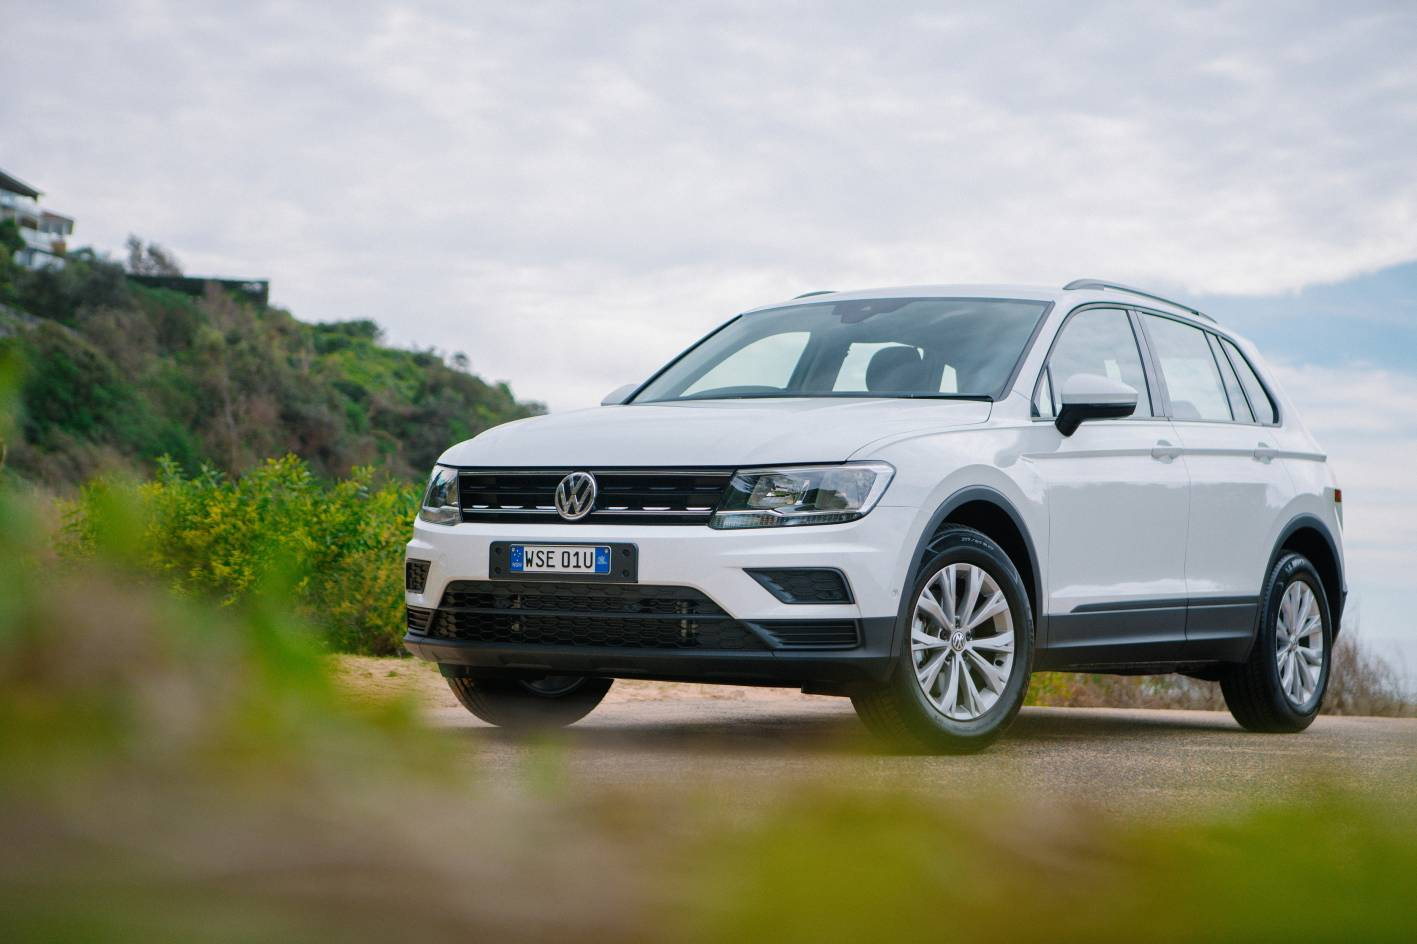 2017 Volkswagen Tiguan - Price, Spec and All You Need to ...